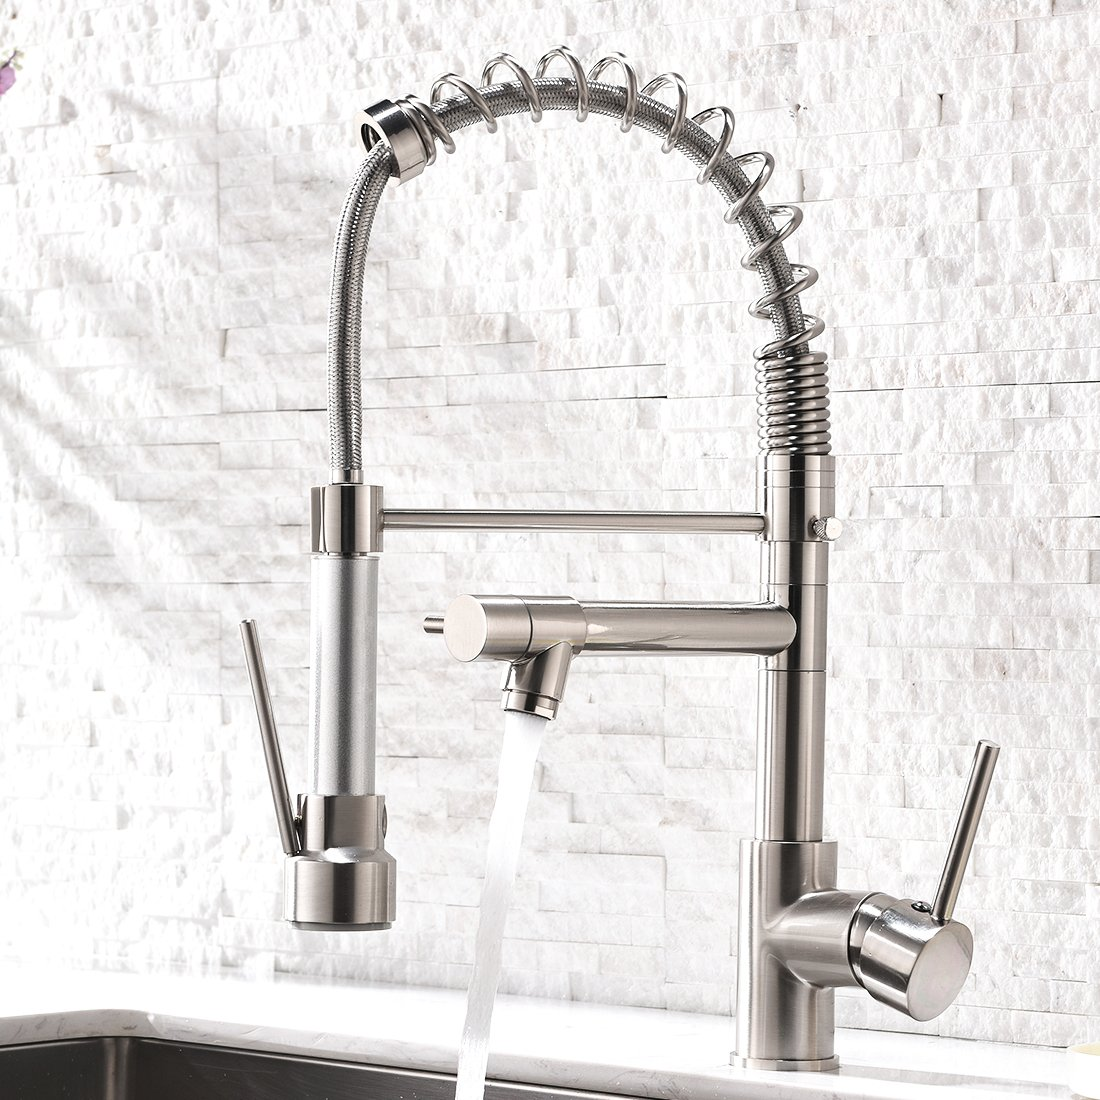 Aimadi Contemporary Kitchen Sink Faucet,Single Handle Stainless Steel Kitchen Faucets with Pull Down Sprayer,Brushed Nickel by AIMADI